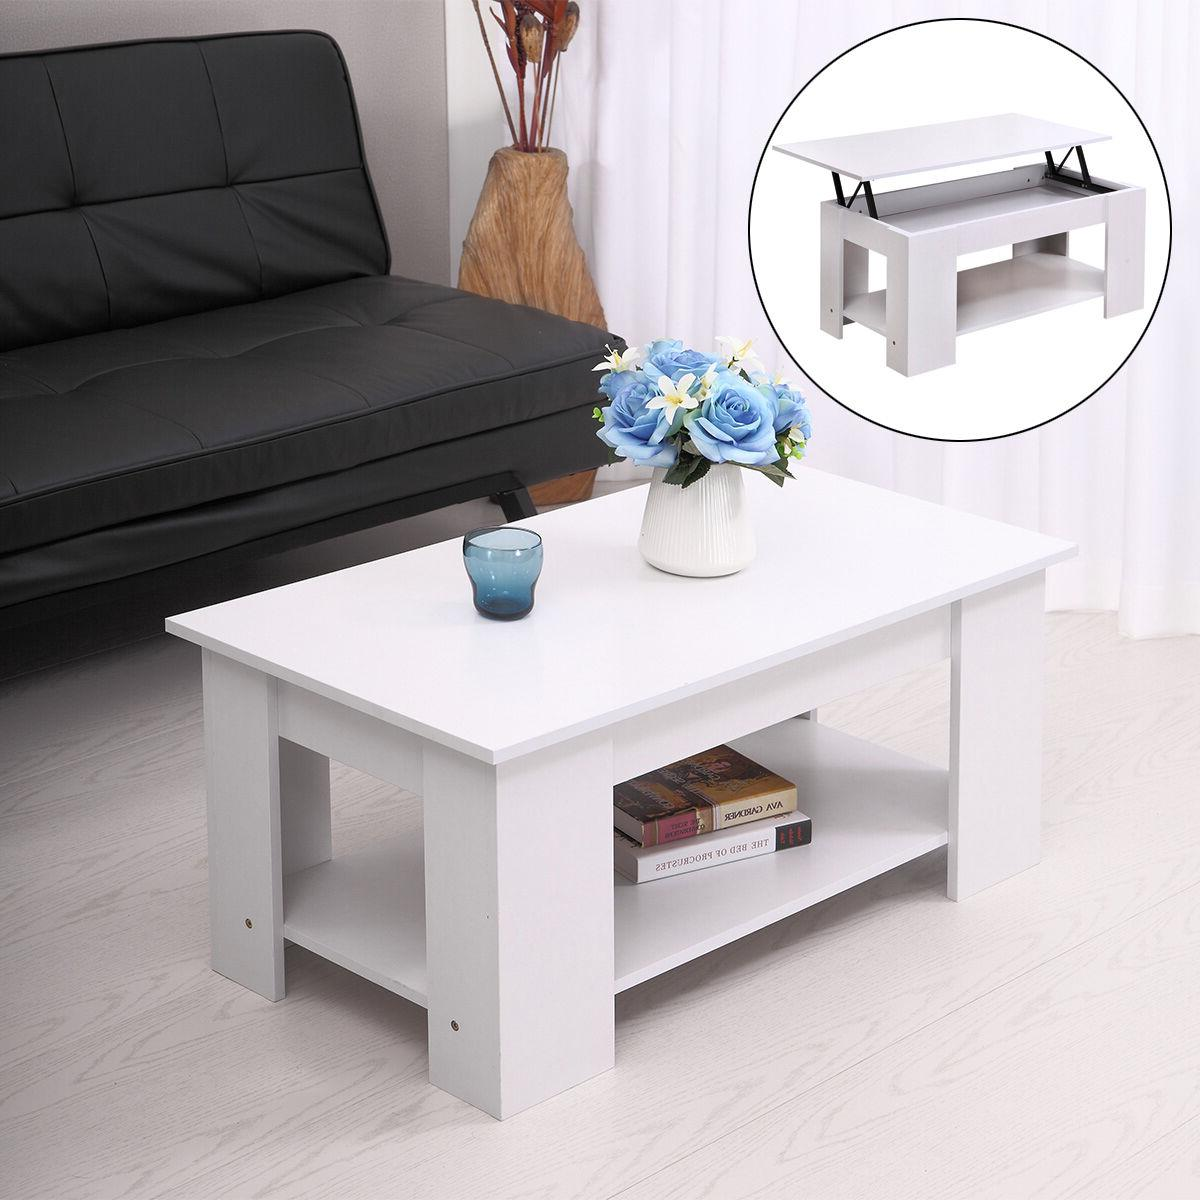 White Modern Wood Lift Top Coffee Table with Storage Space L